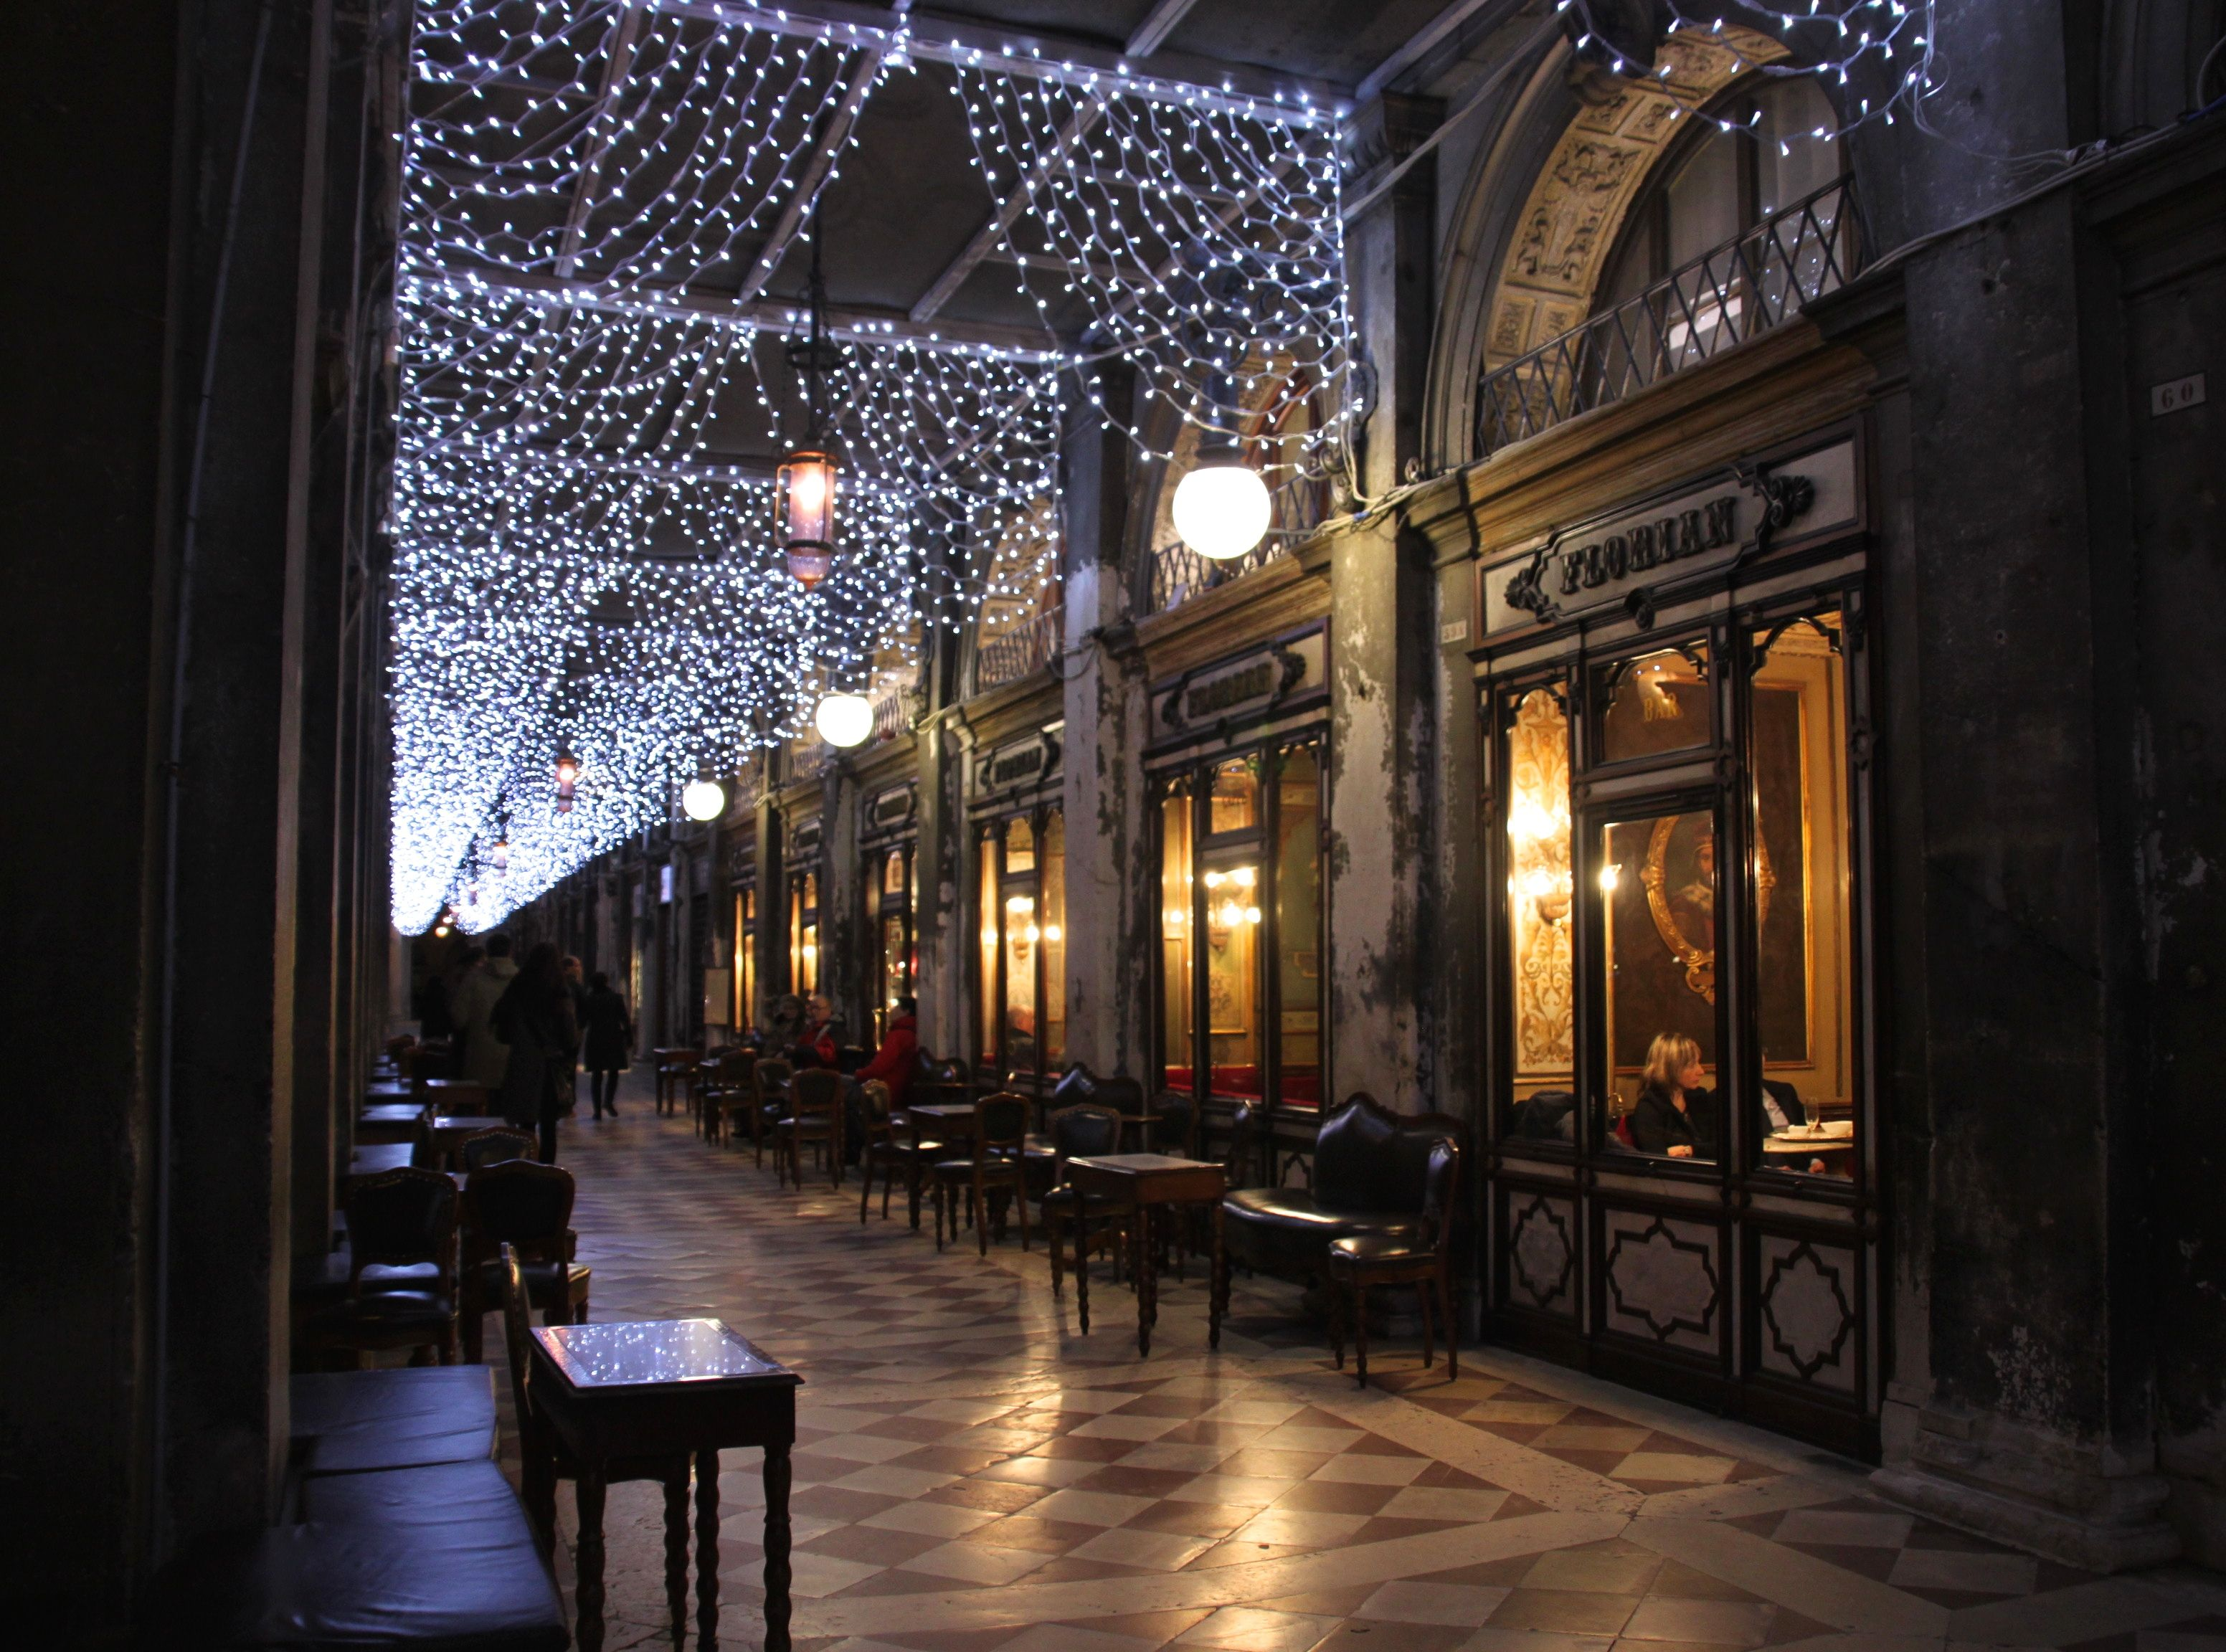 Christmas lights in the colonnade of St Mark's outside the Florian Cafe